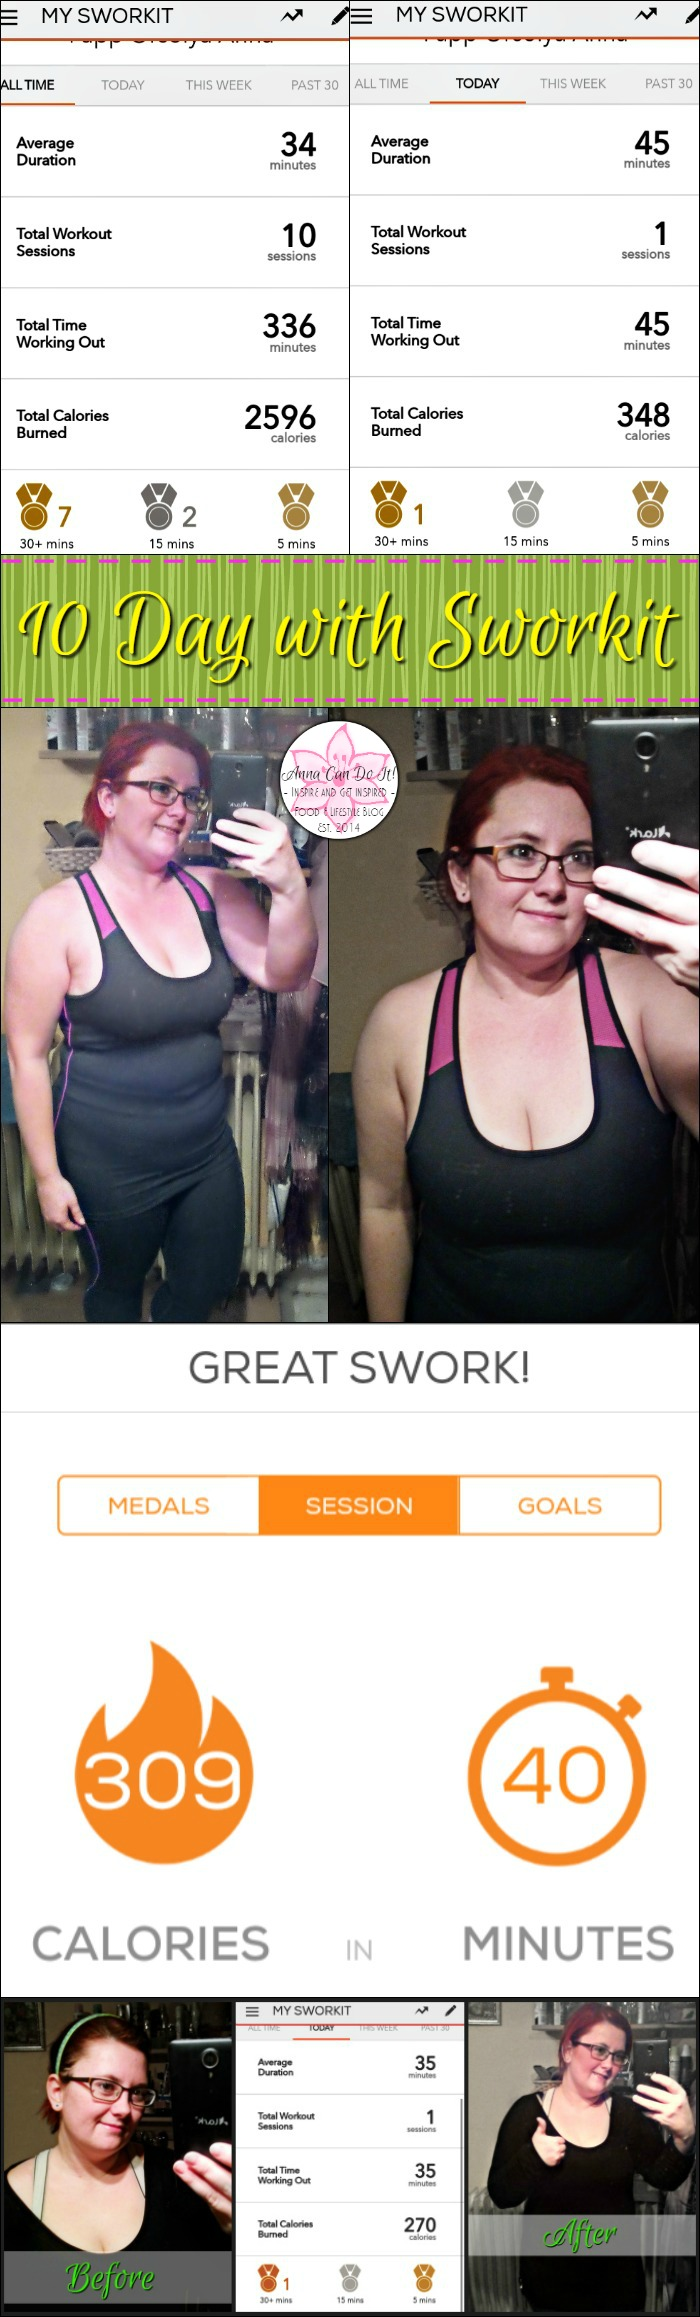 10 day with Sworkit